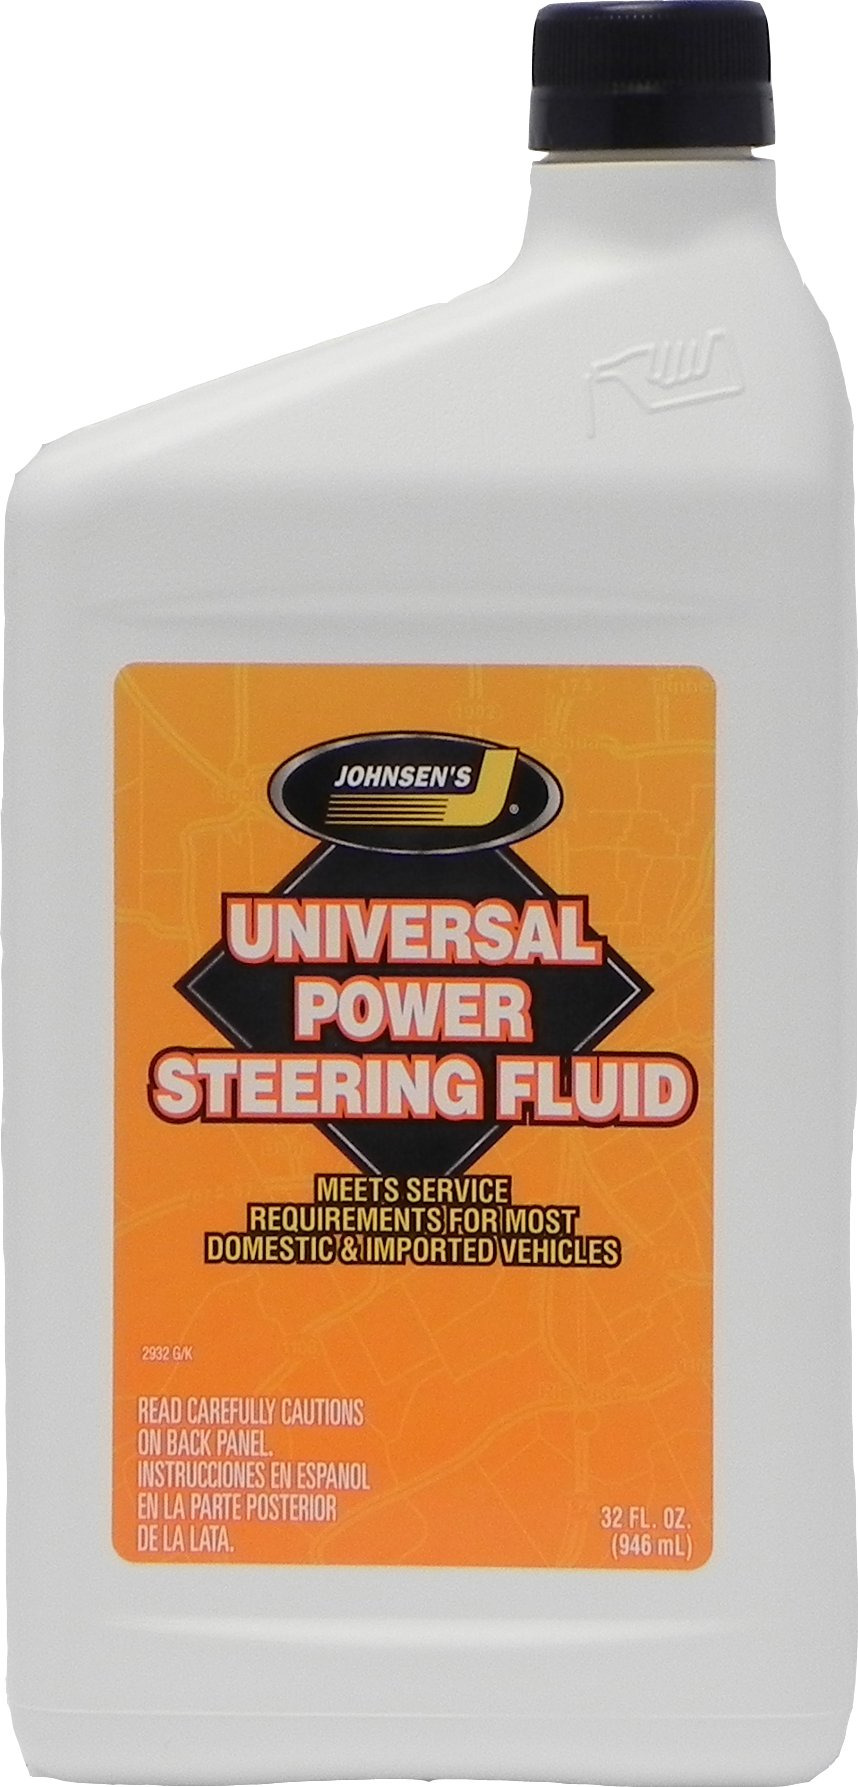 Johnsen's 2932 Universal Power Steering Fluid - 32 oz.